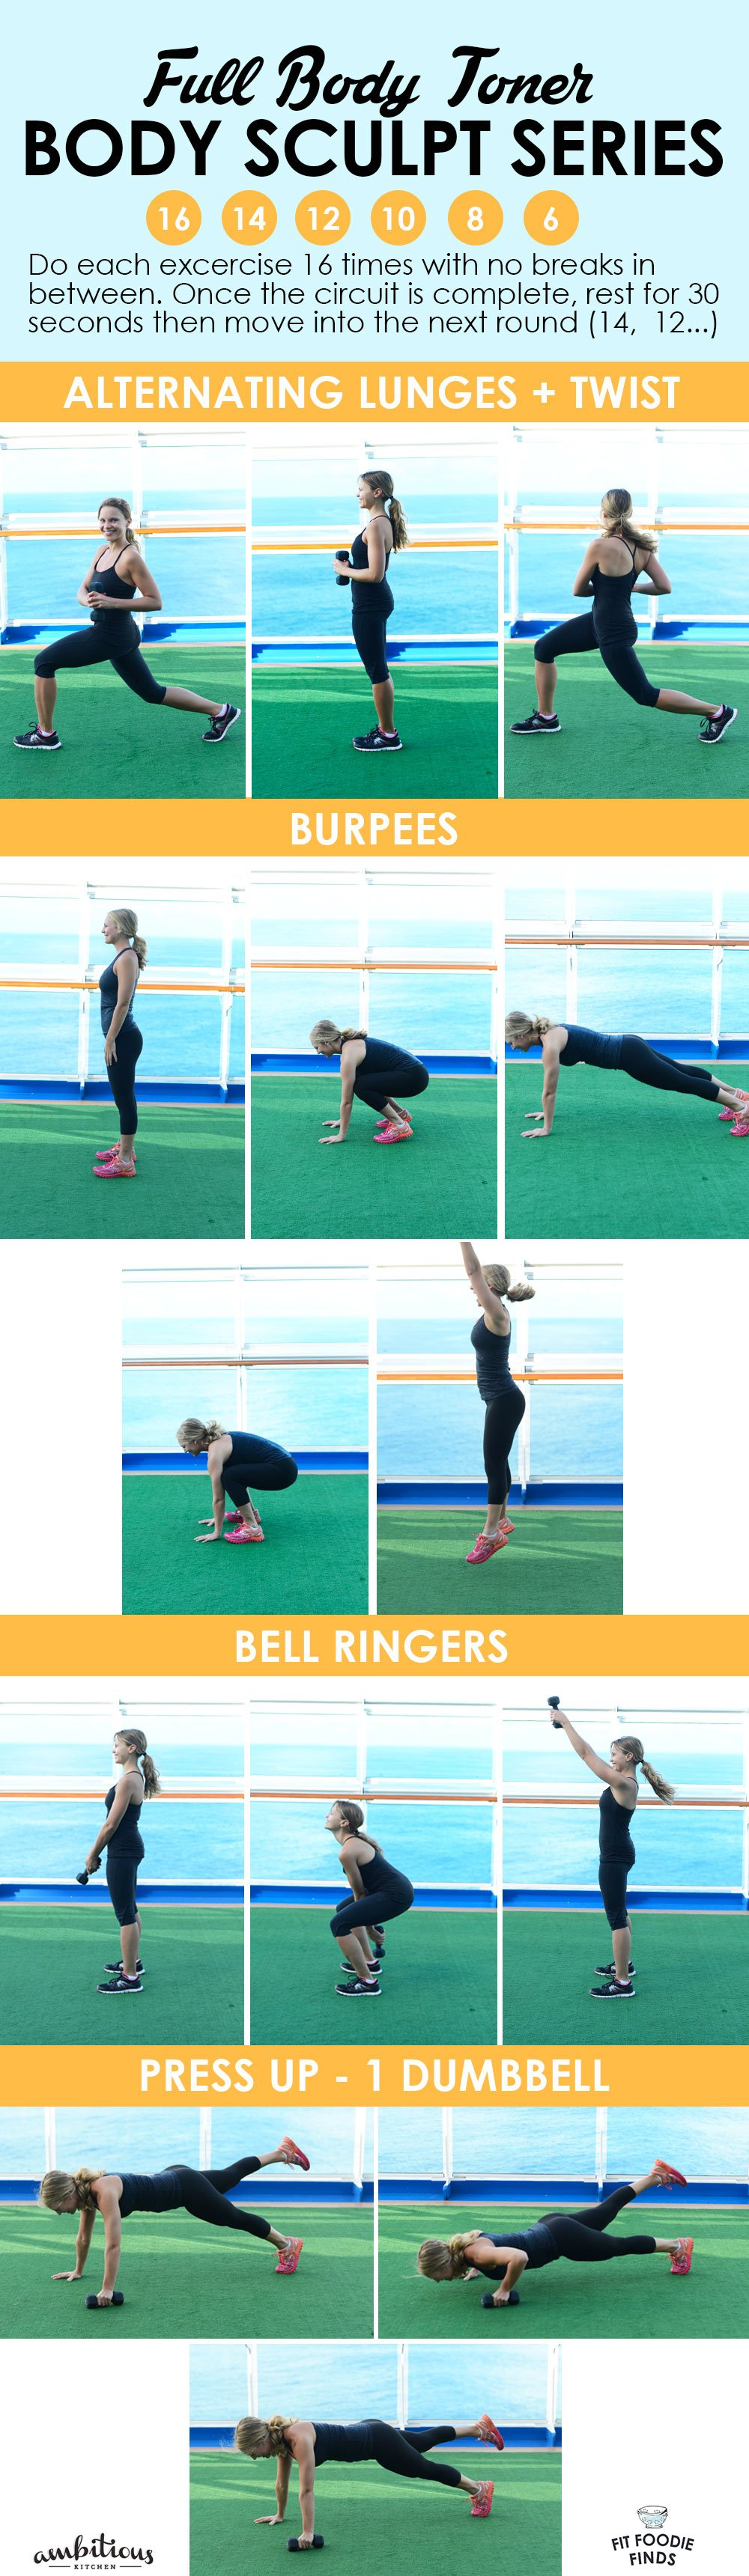 30 Minute Full Body Toner Workout collage